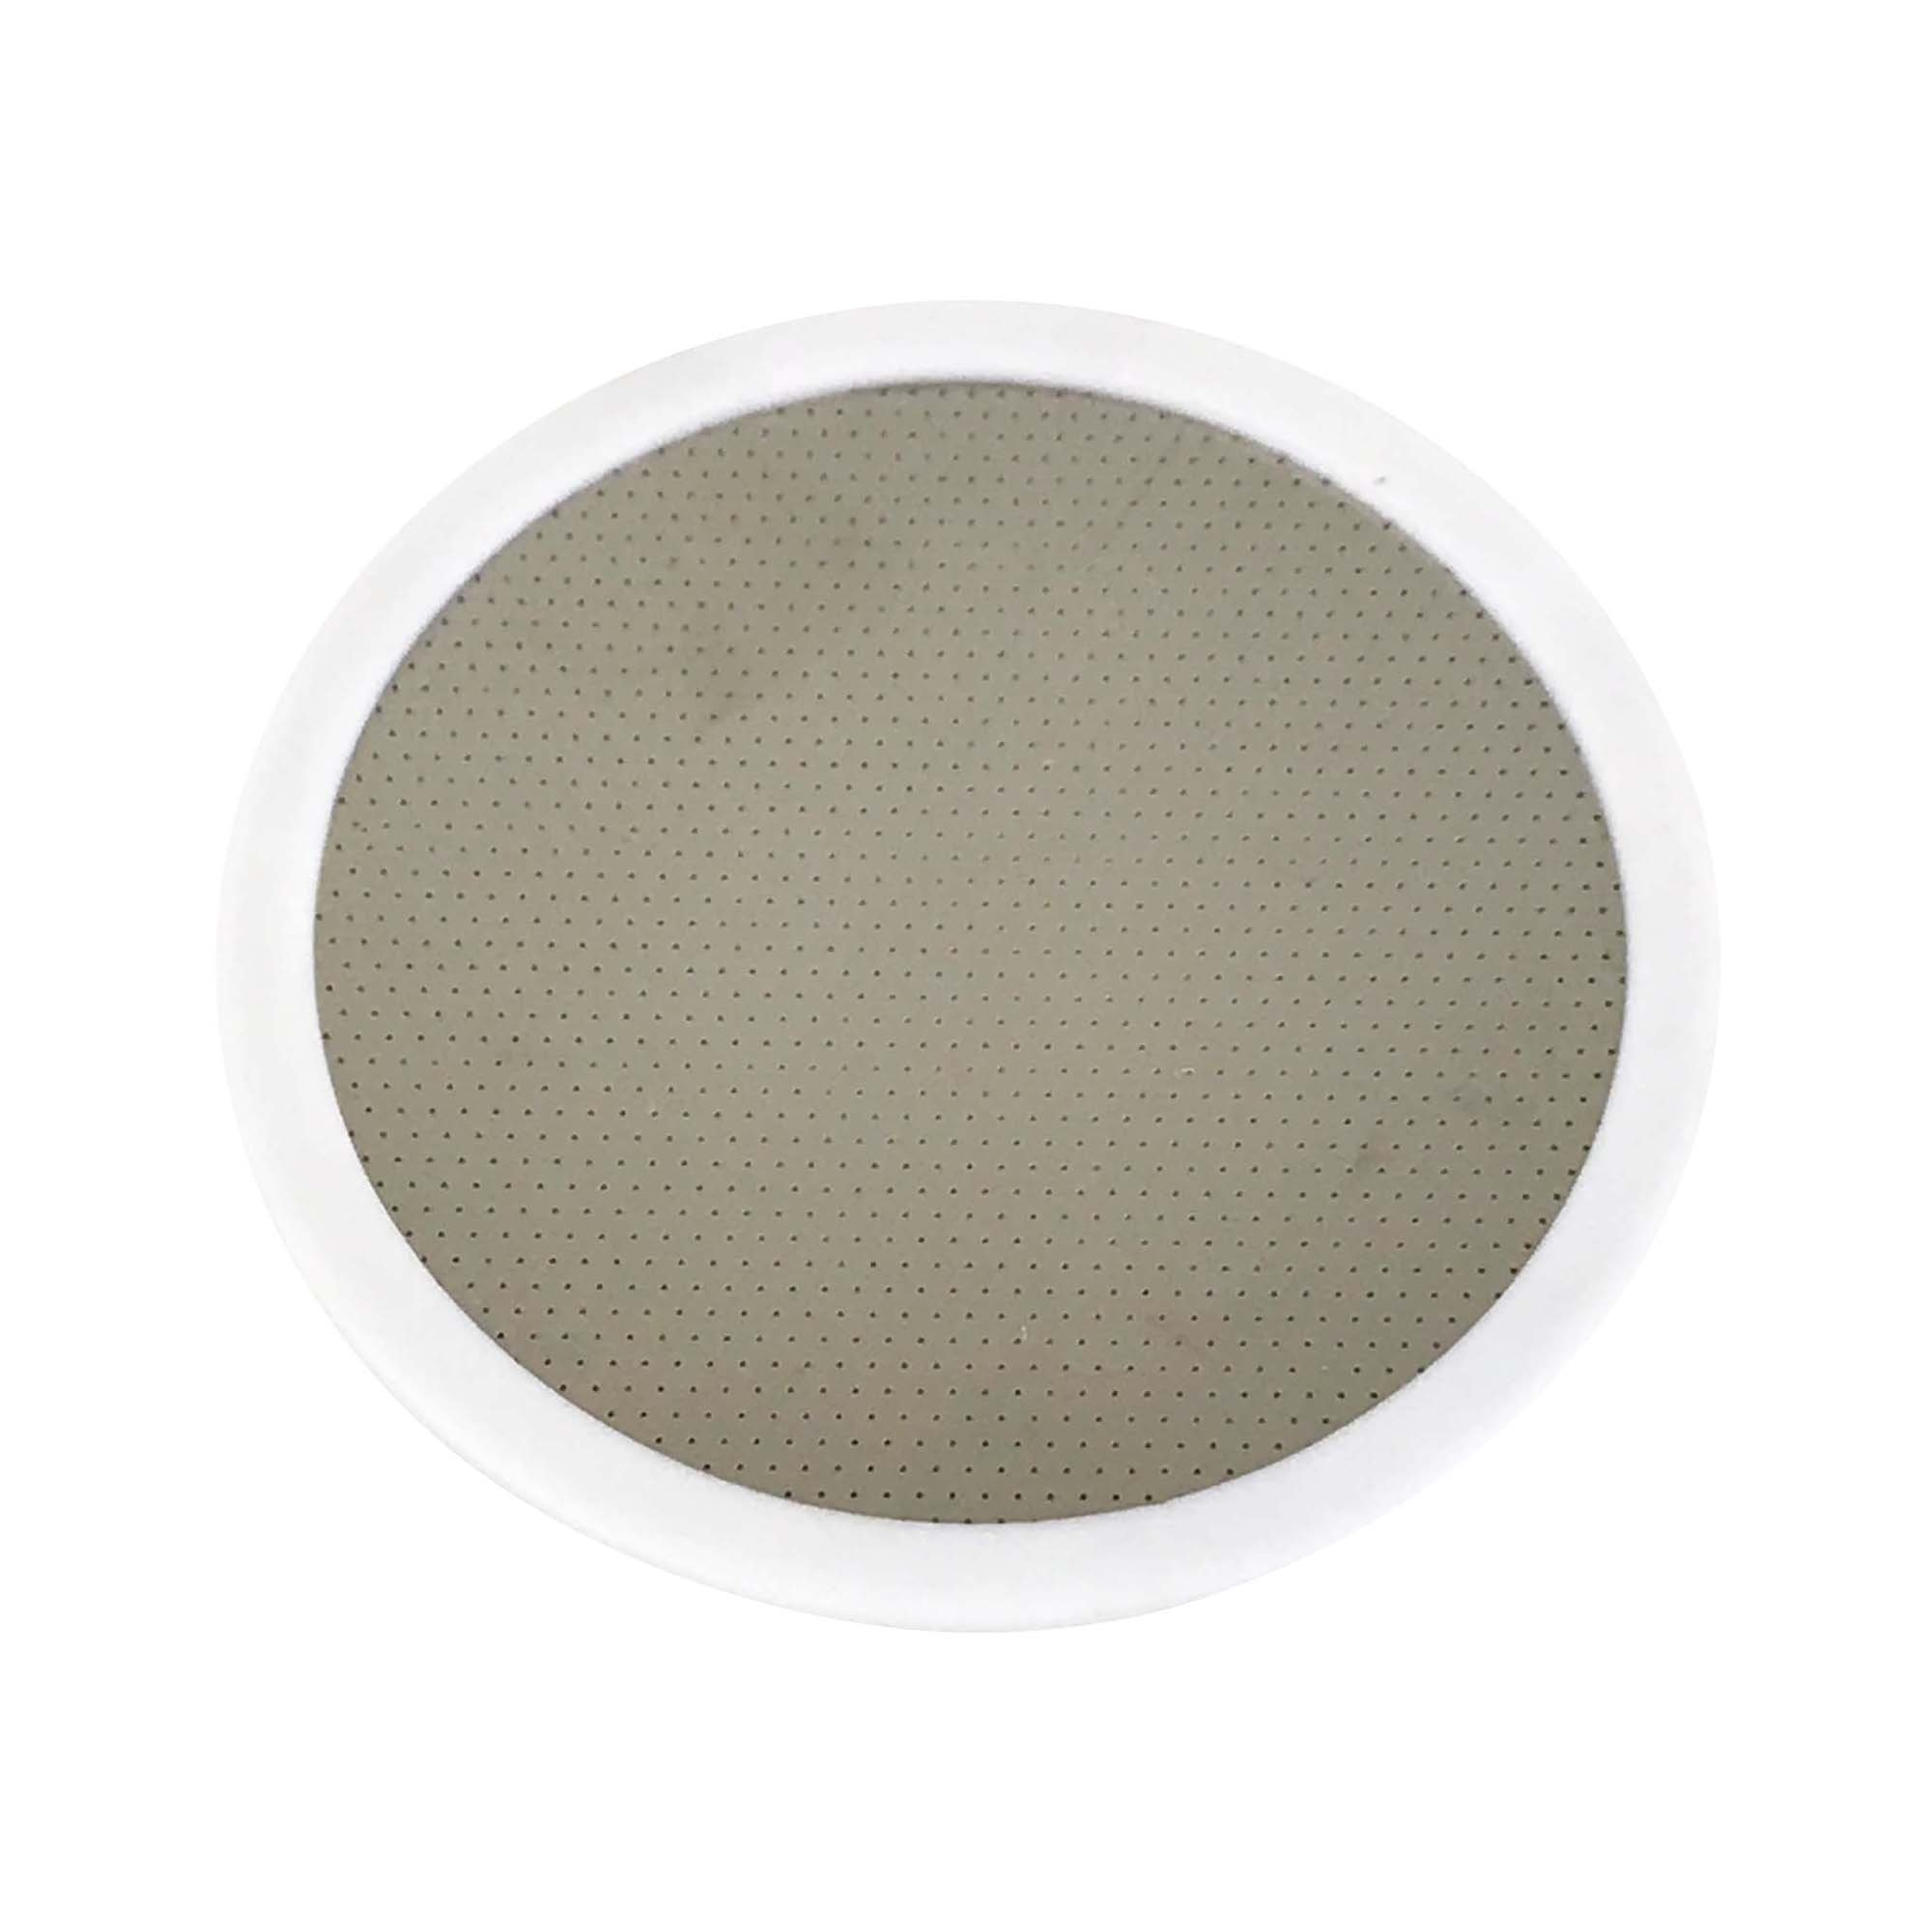 Think Crucial Reusable Deluxe Stainless Steel and Rubber Disk Filter Fits All Toddy(R) Cold Brew System Makers